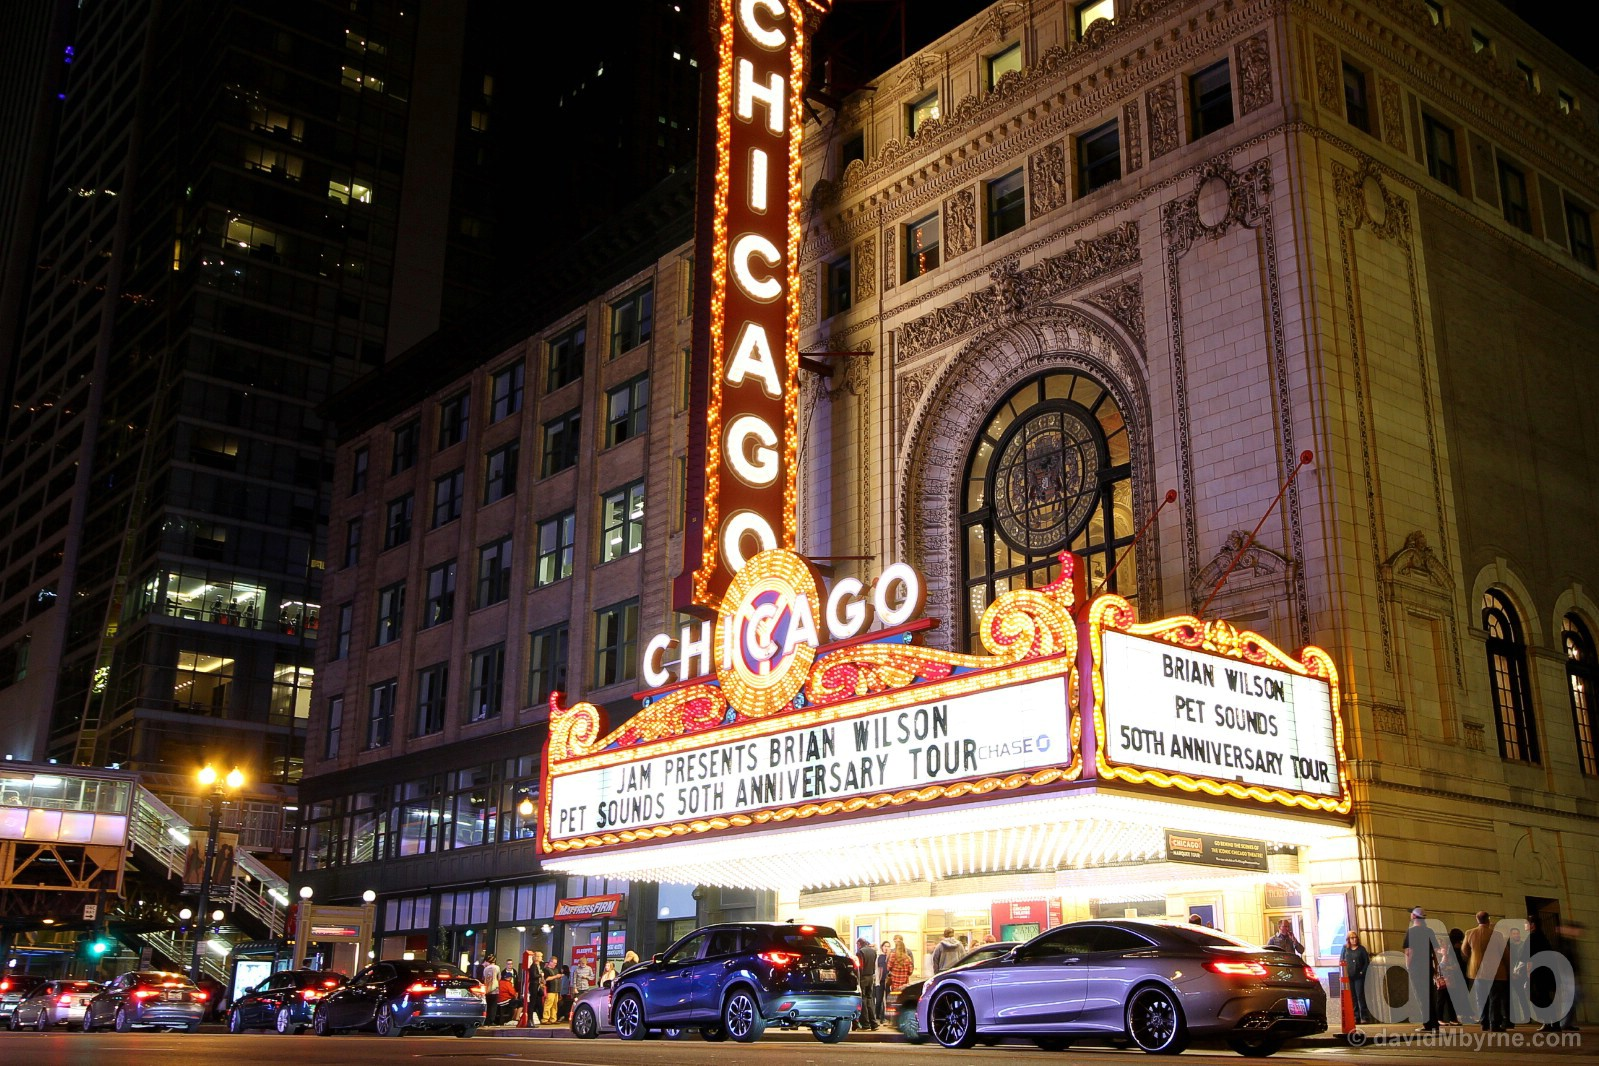 The Chicago Theatre, State Street, Chicago, Illinois, USA. October 1, 2016.